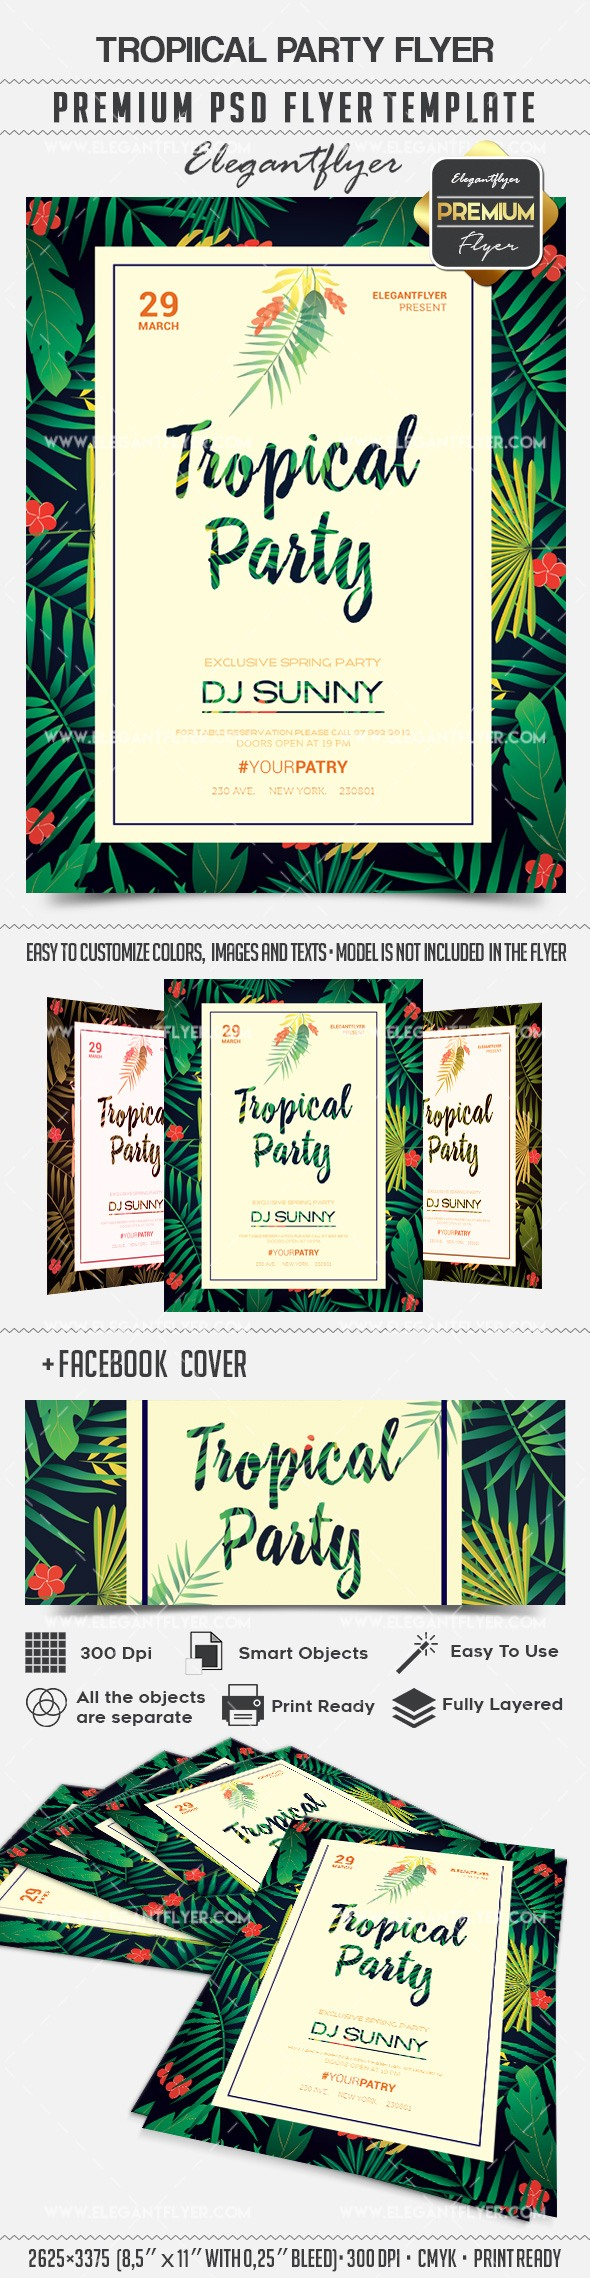 Tropical Theme for Party PSD Template